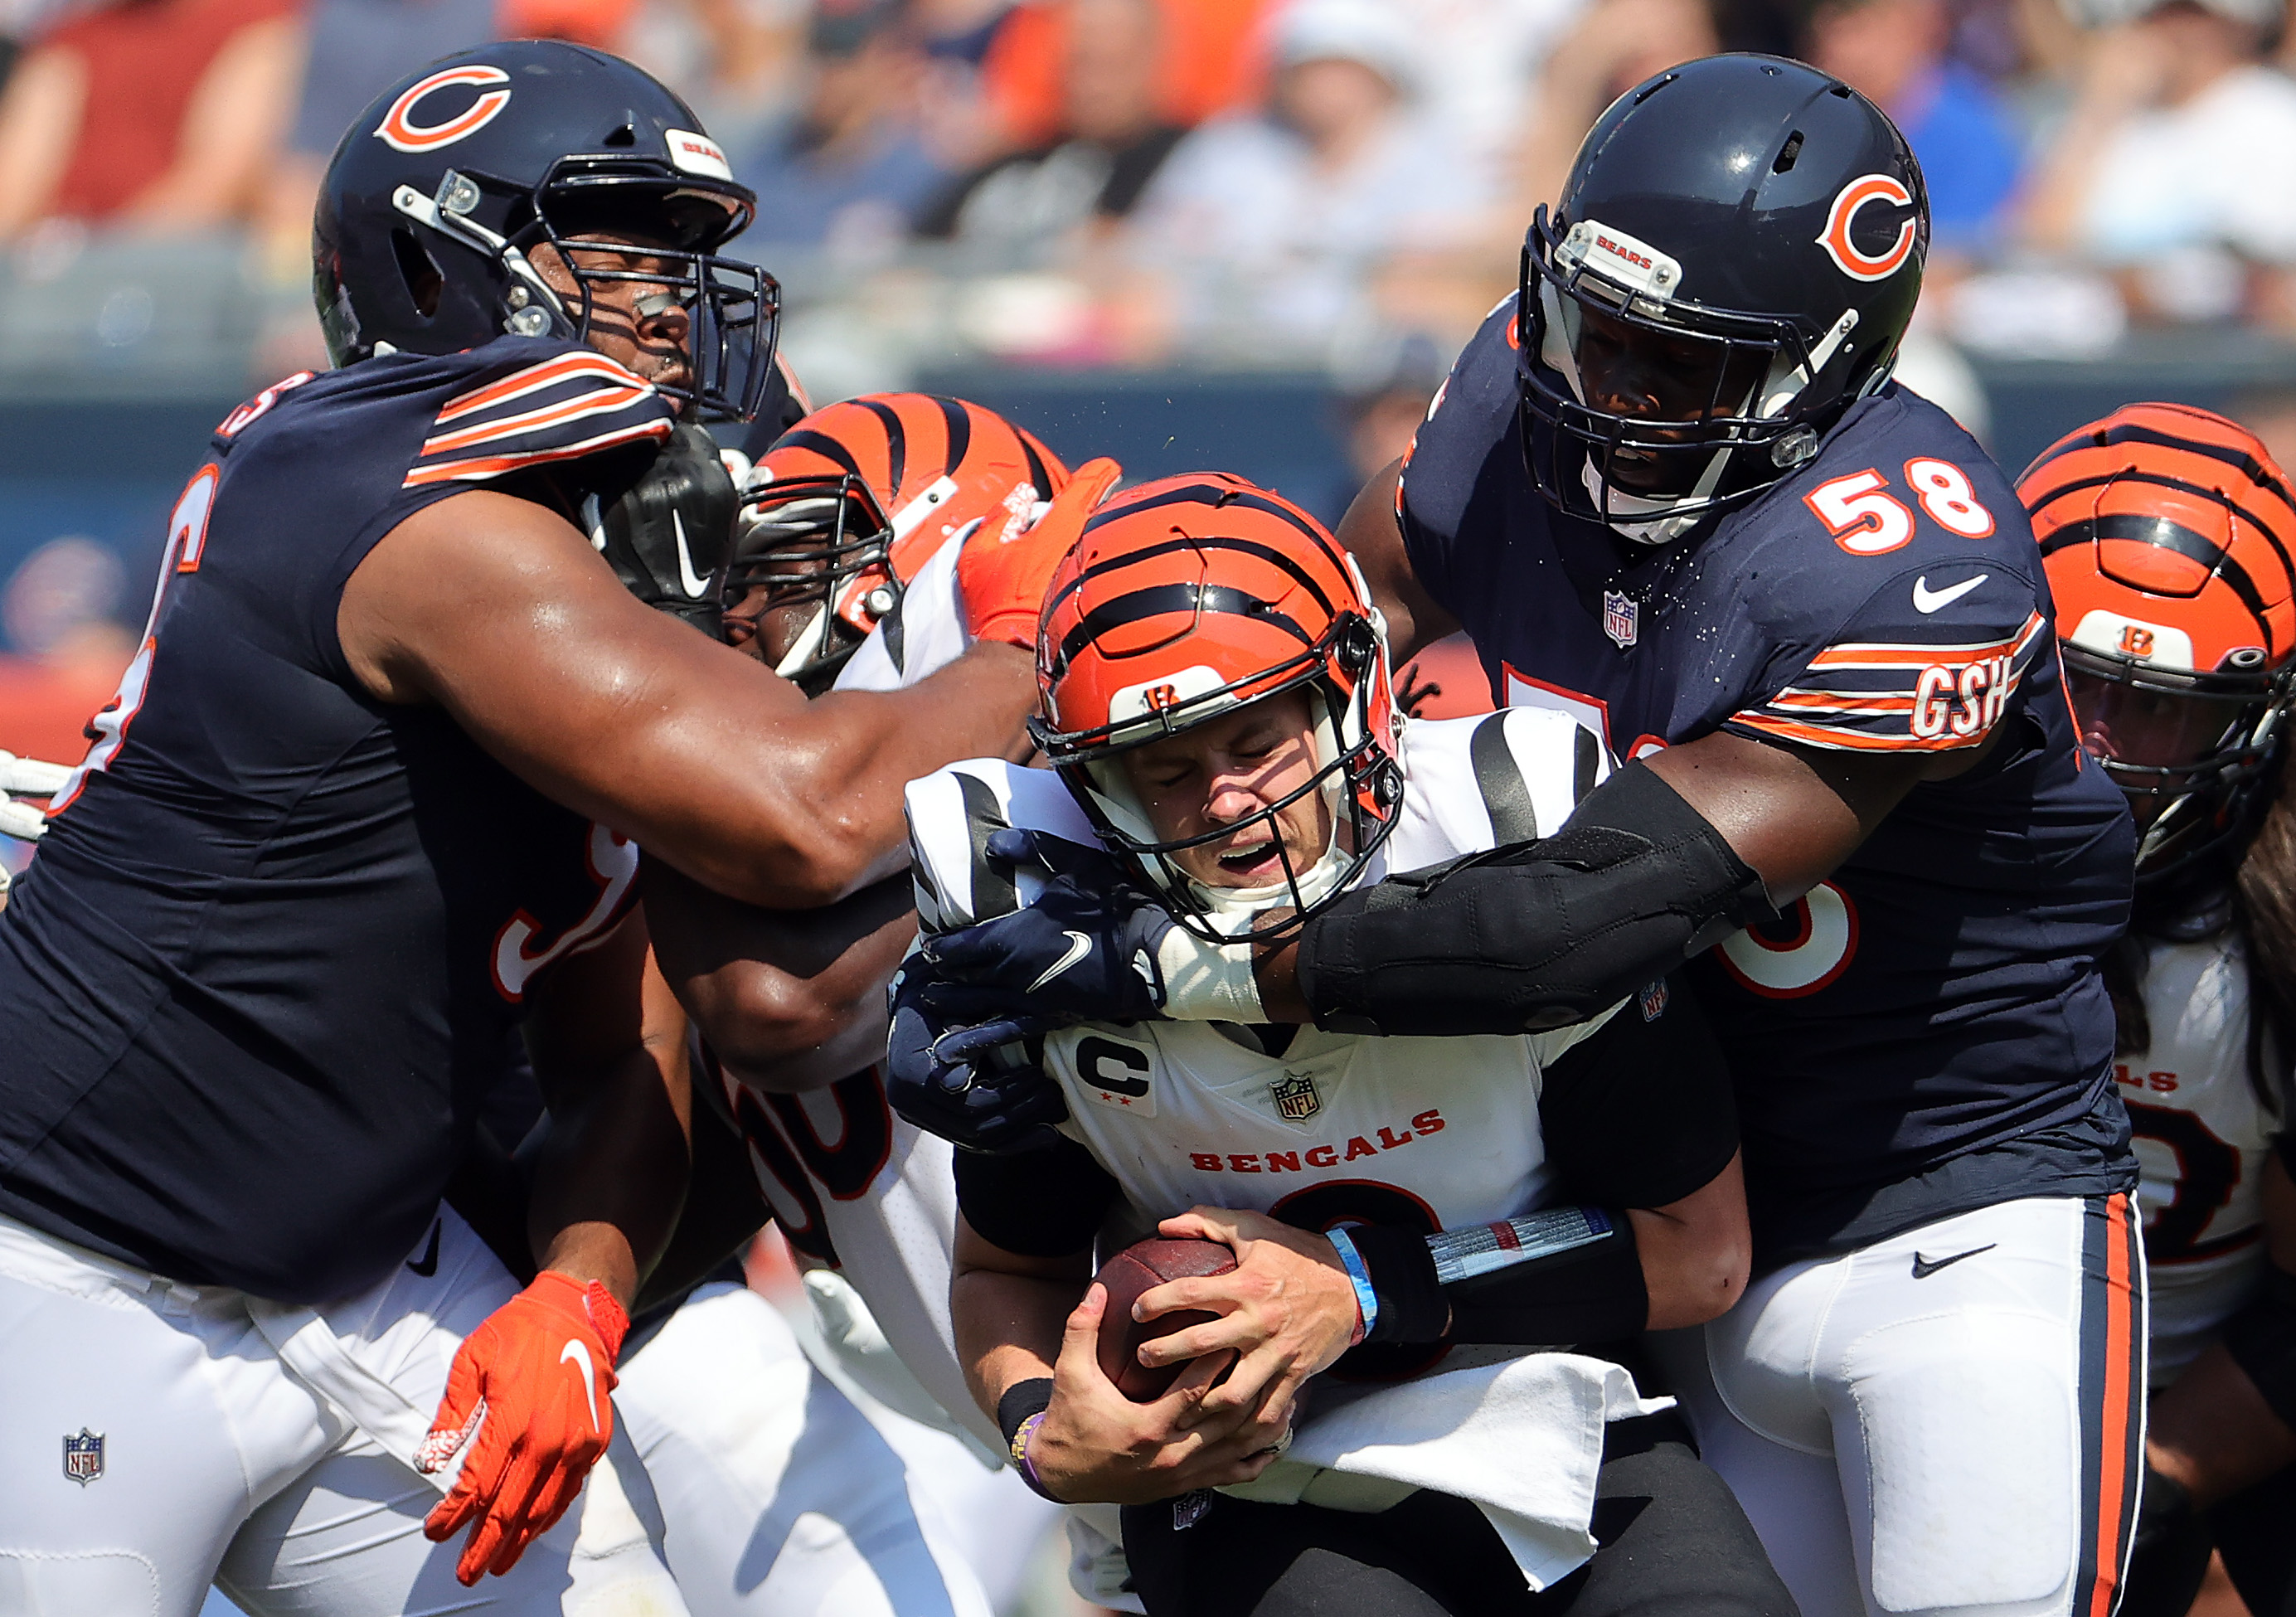 Bears linebacker Roquan Smith (58) sacks Bengals quarterback Joe Burrow (9) last Sunday at Soldier Field. The Bears had five sacks and four takeaways in a 20-17 victory.